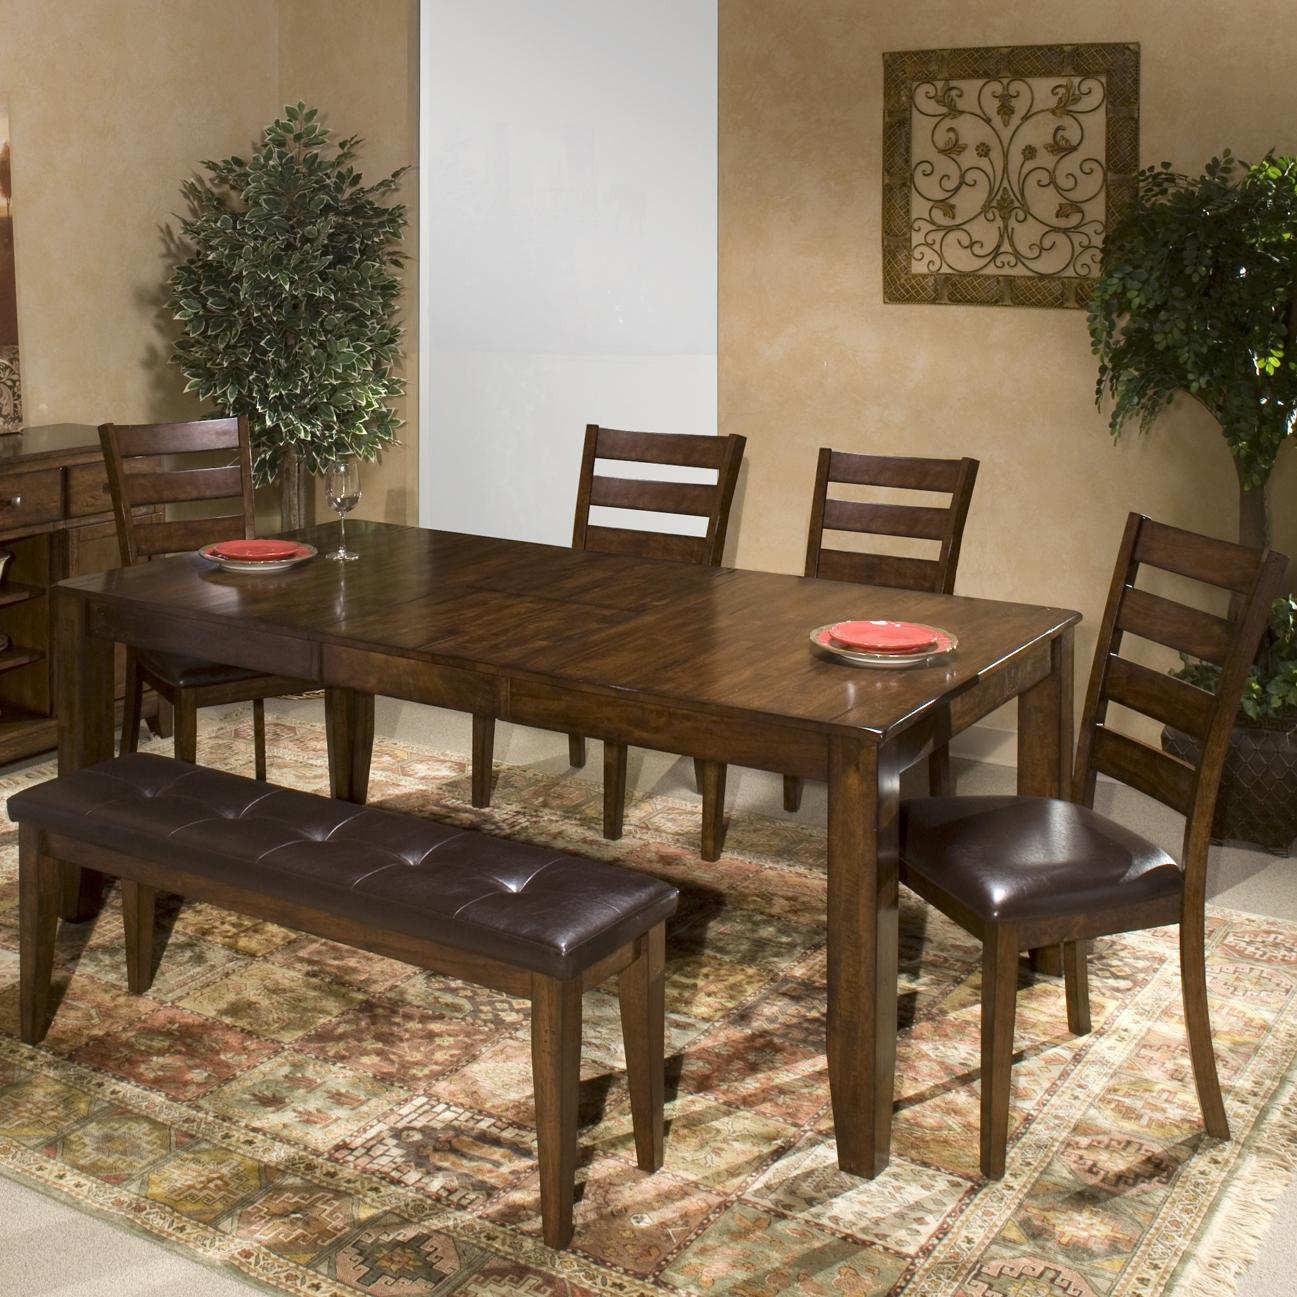 Kona 6 Piece Dining Room Set by Intercon at Fisher Home Furnishings